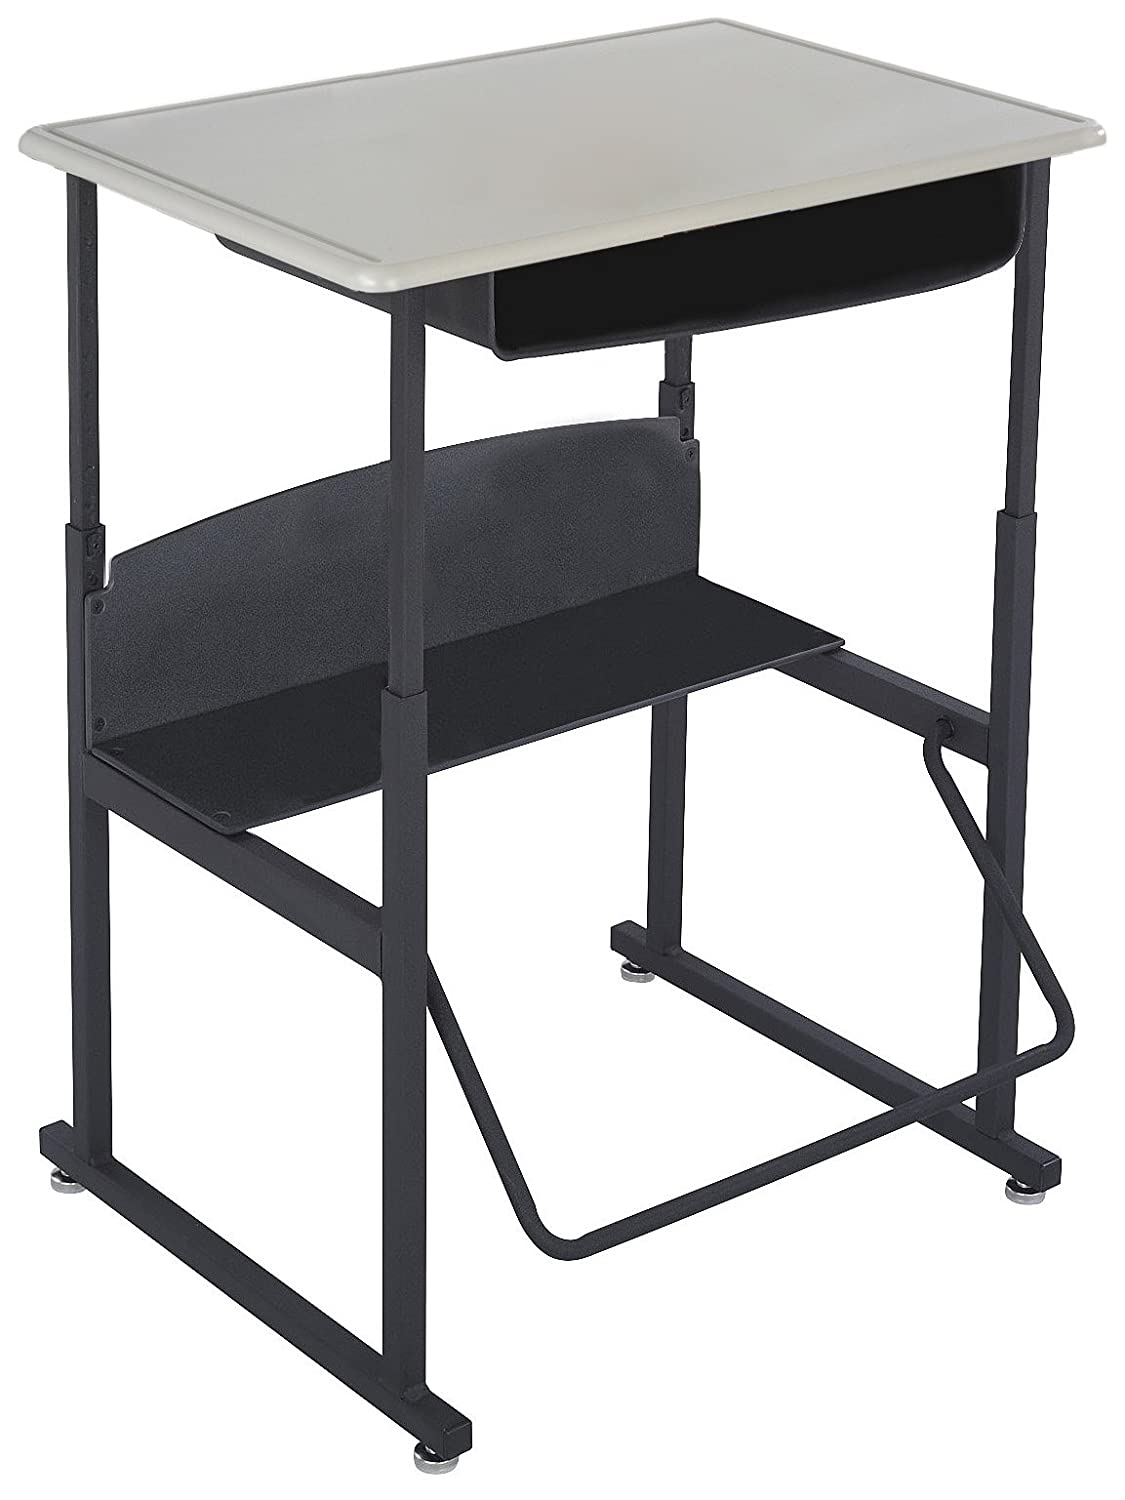 ergocentric from small footrest for accessories desk rests black foot adjustable leg products